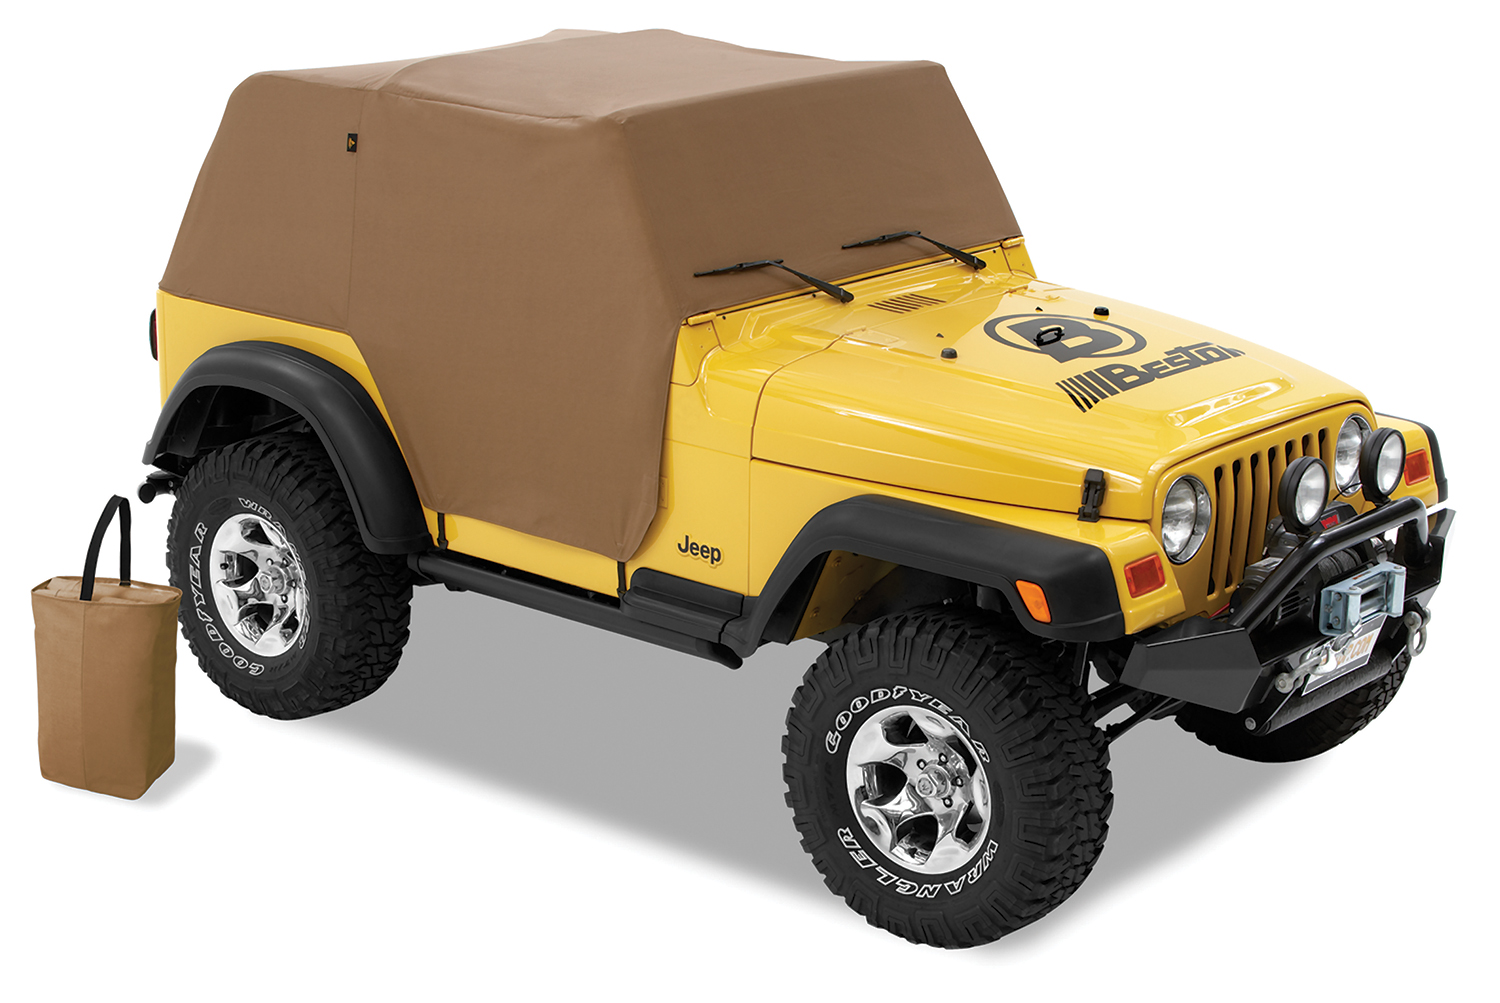 Jeep YJ Trail Cover All Weather For 92-95 Jeep YJ Wrangler Spice Bestop